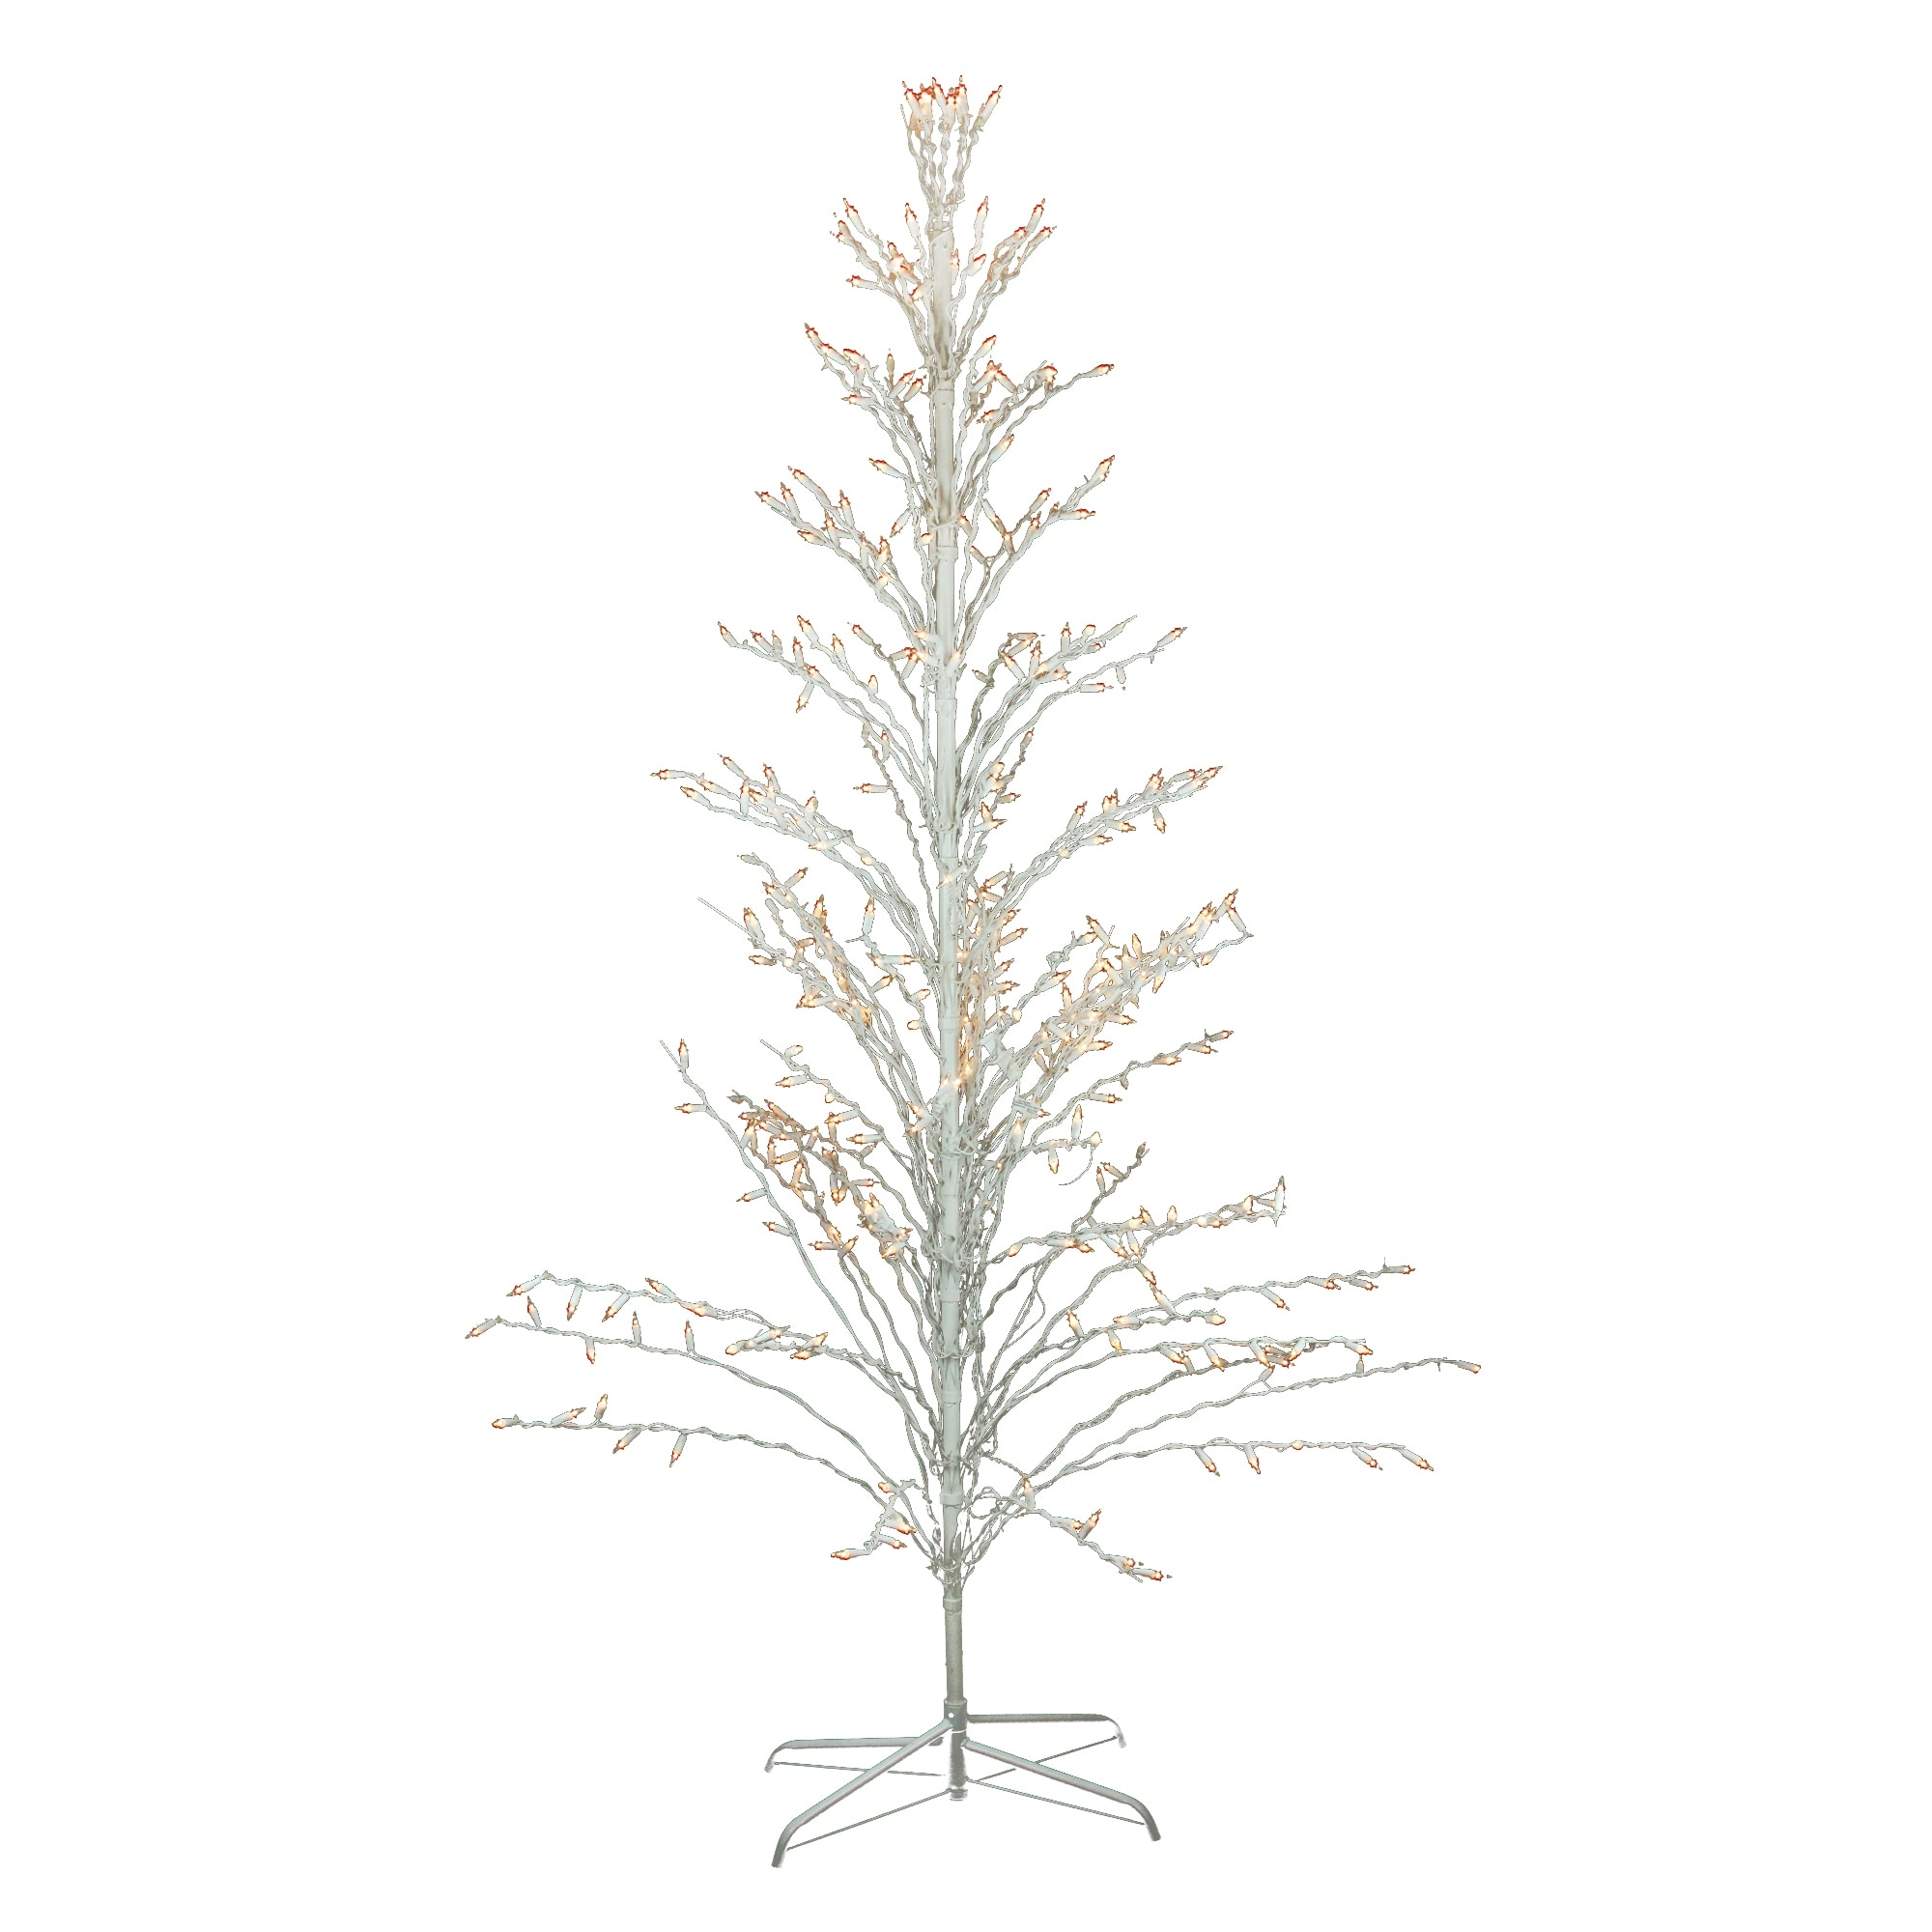 new products 5420d 02409 6' White Lighted Christmas Cascade Twig Tree Outdoor Decoration - Clear  Lights